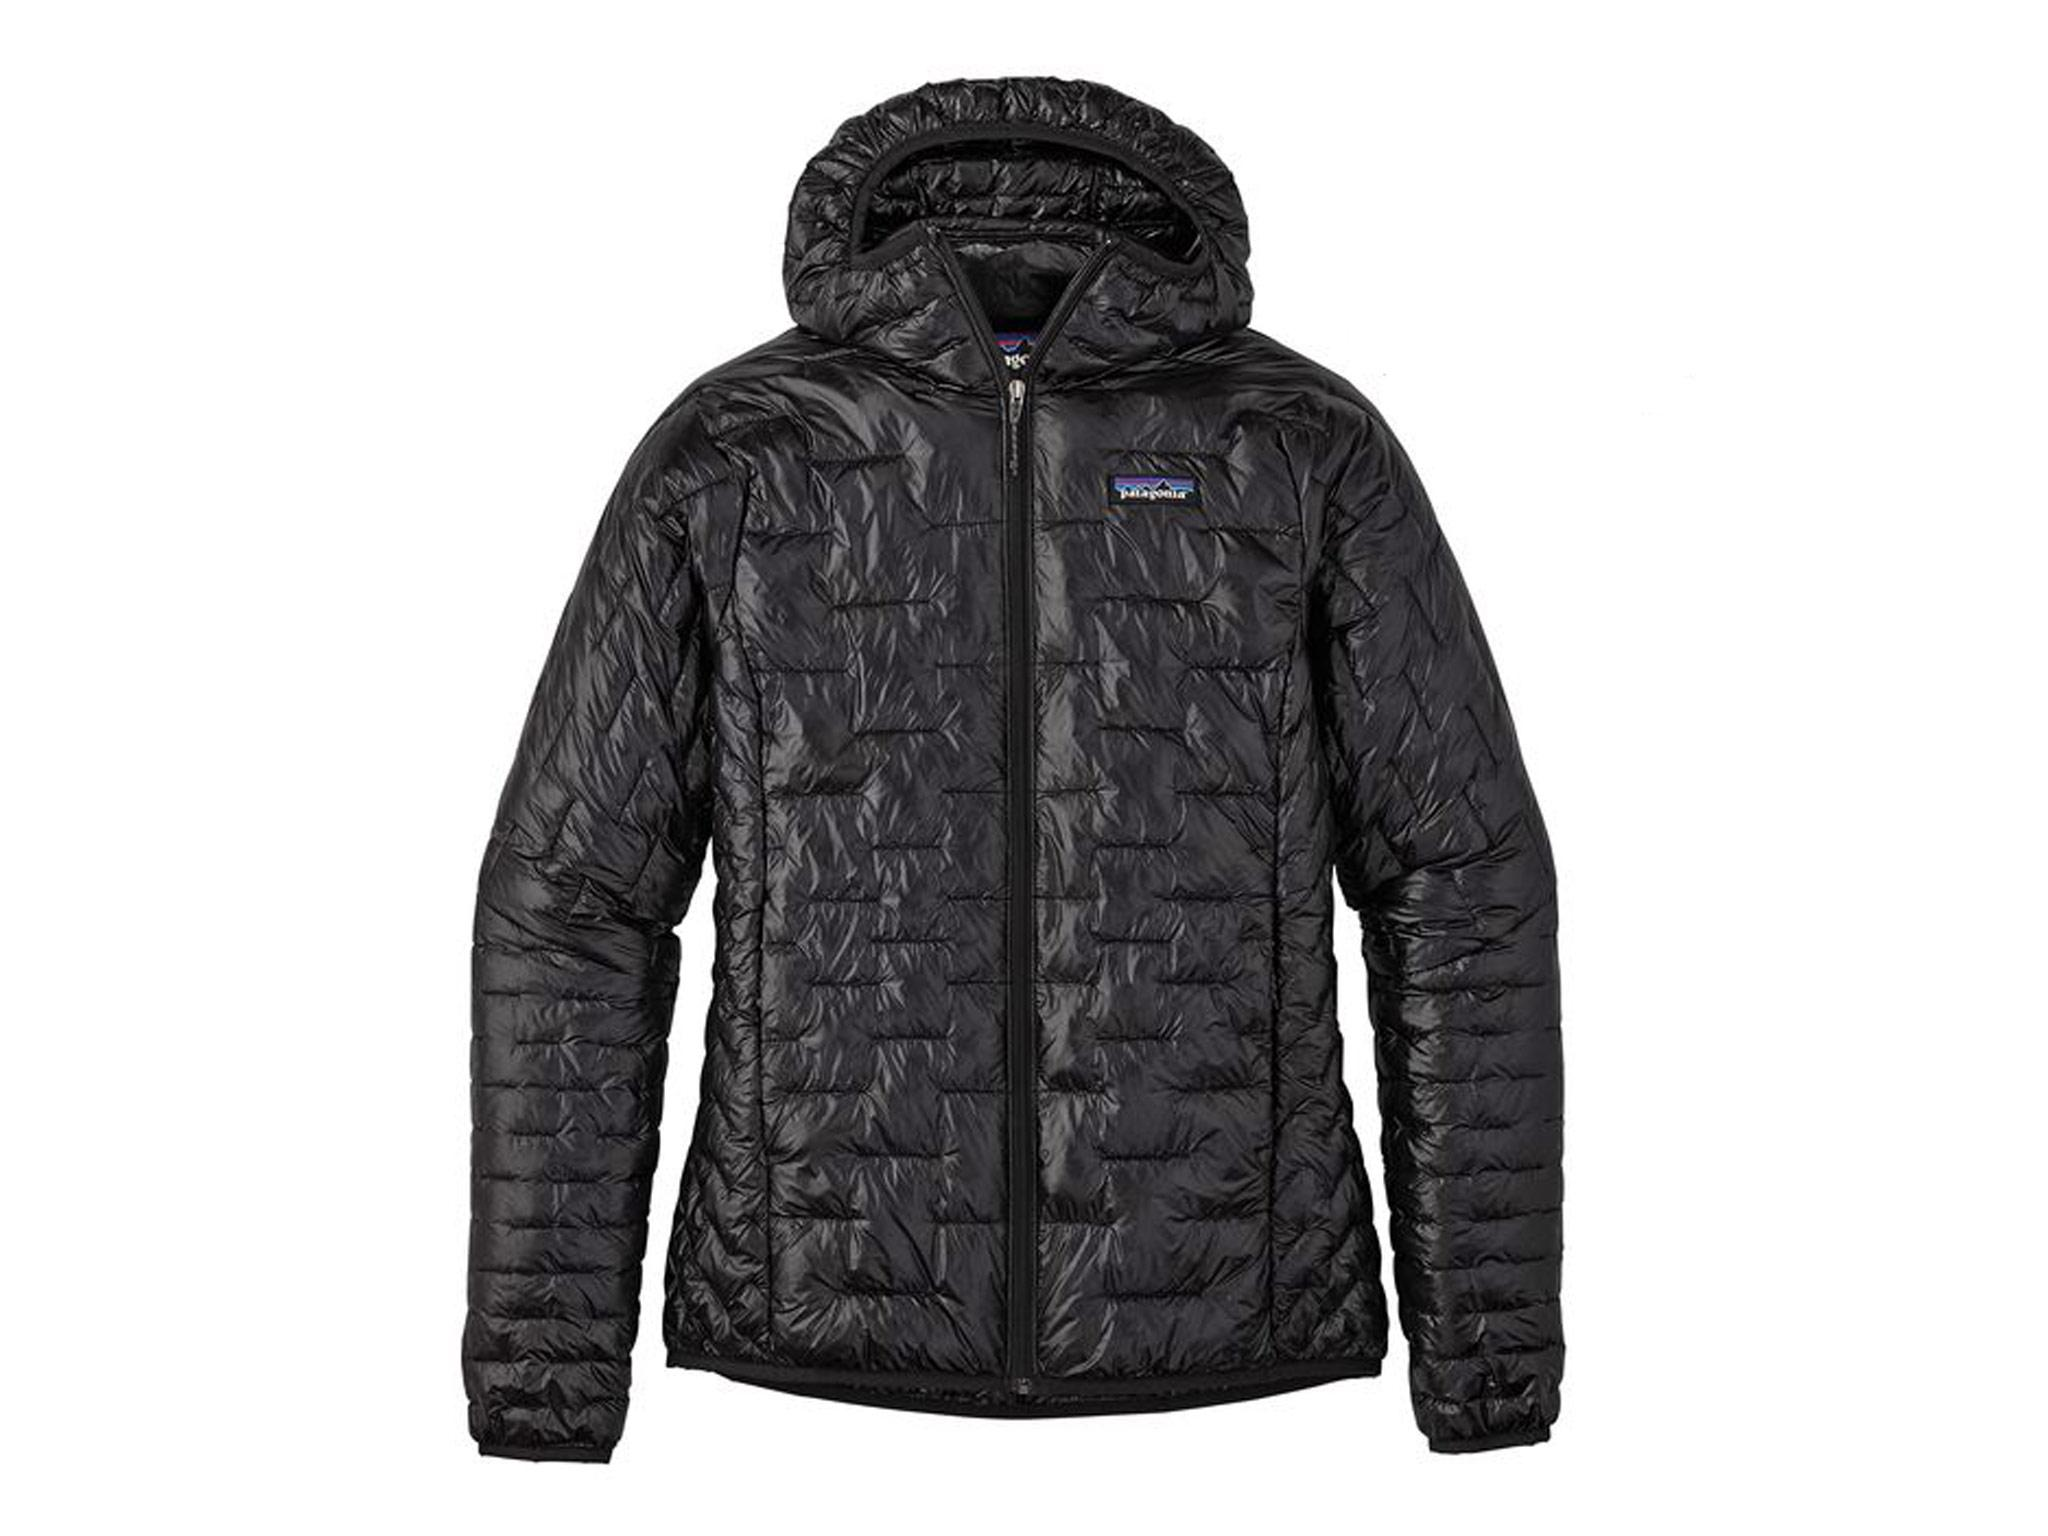 92cd1800a 11 best insulated jackets | The Independent